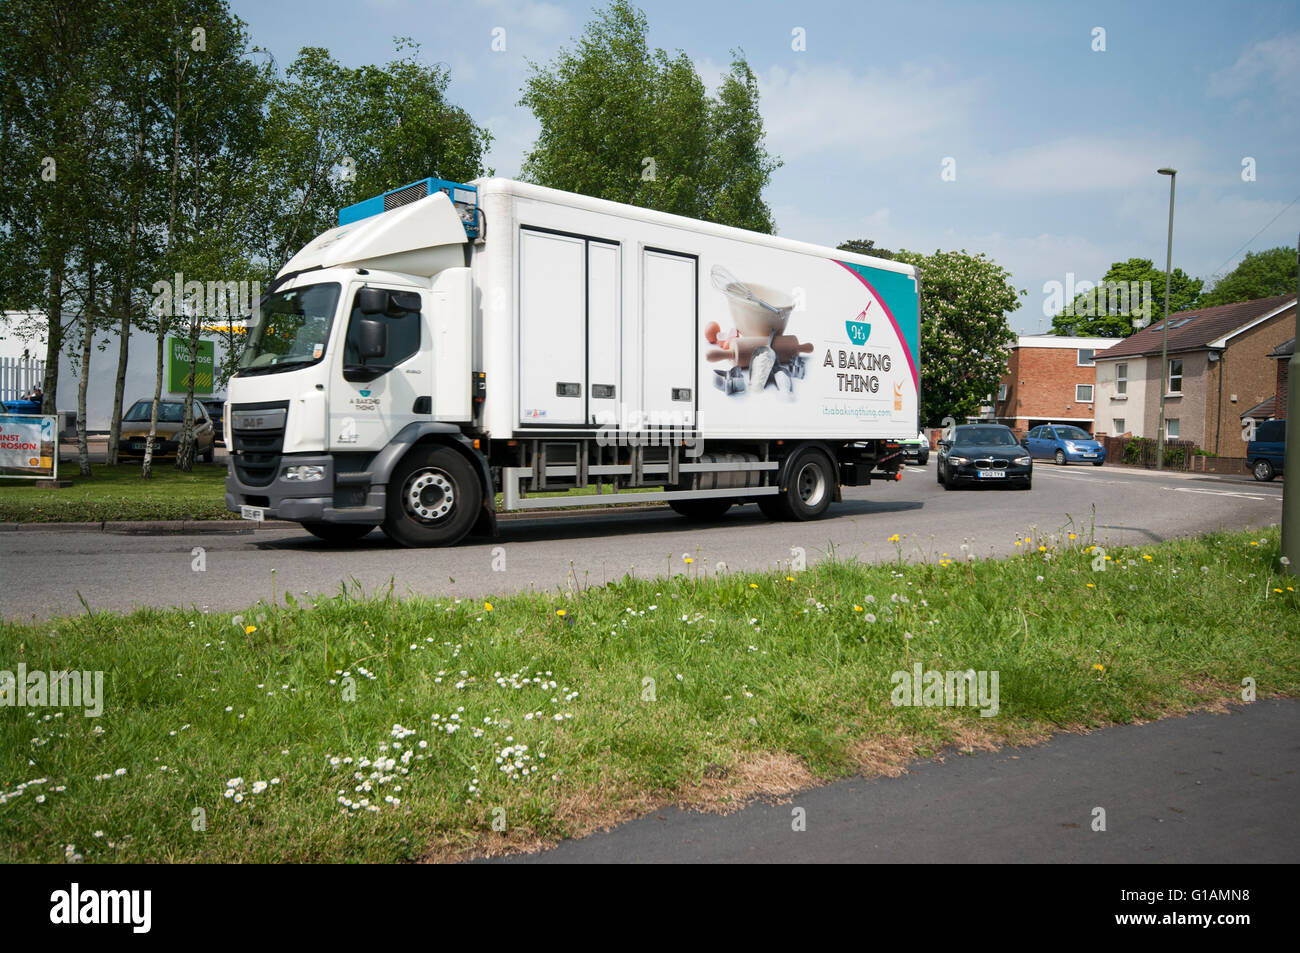 Side View Of Its A baking Thing Lorry - Stock Image